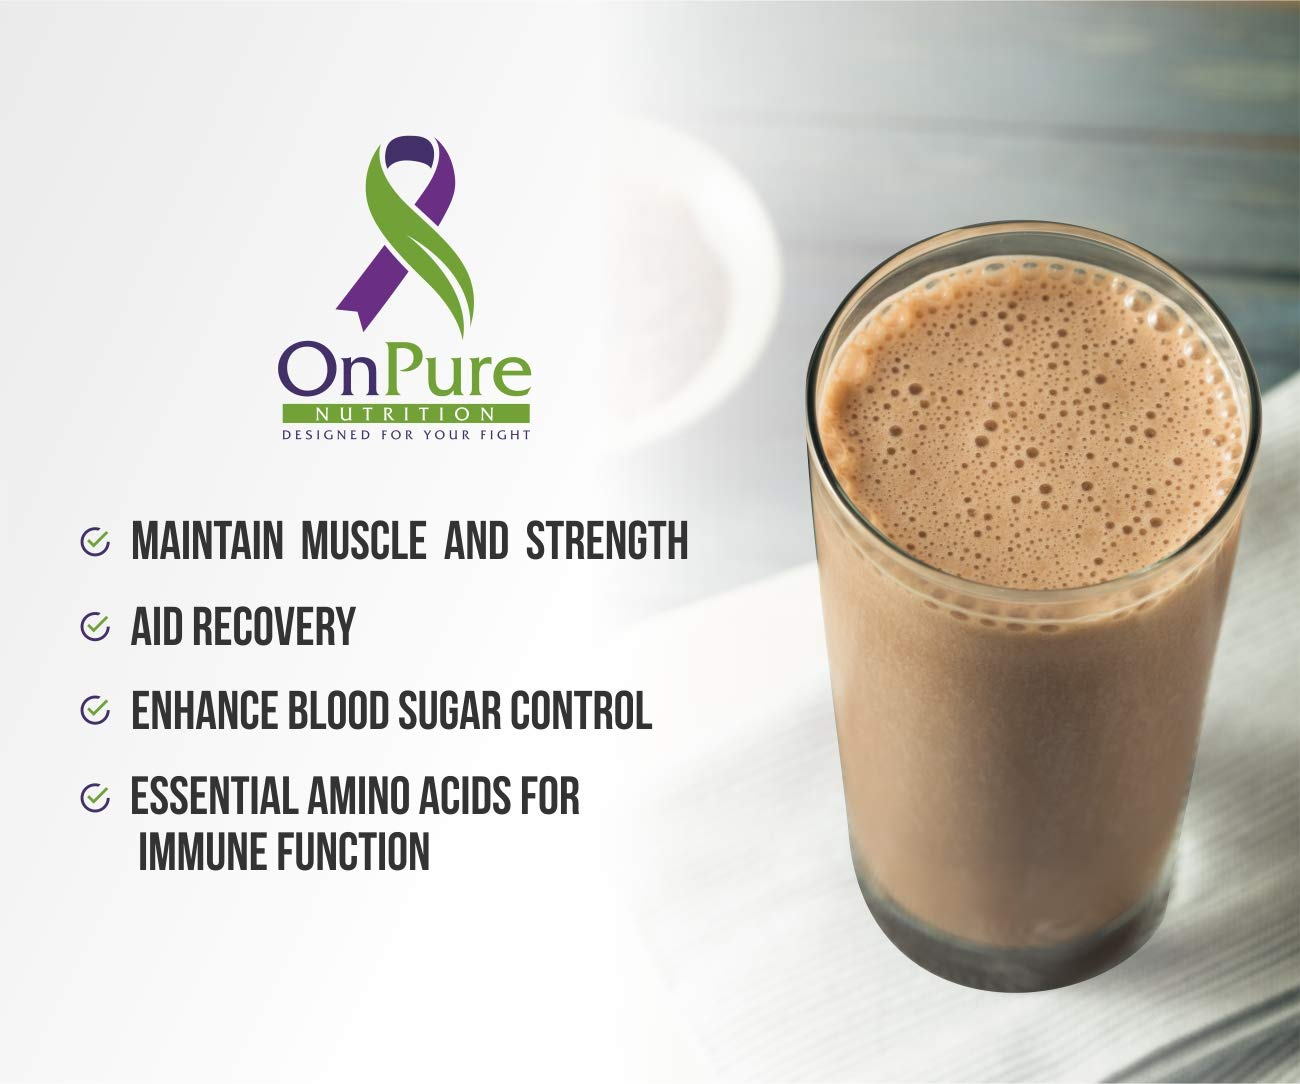 OnPure Chocolate Whey Protein Powder, NO Sugar, HIGH Protein 26 Grams of GMO-Free, NO Soy, NO Artificial Flavors. Gluten Free, Keto Friendly, Low CARB. 30 Servings